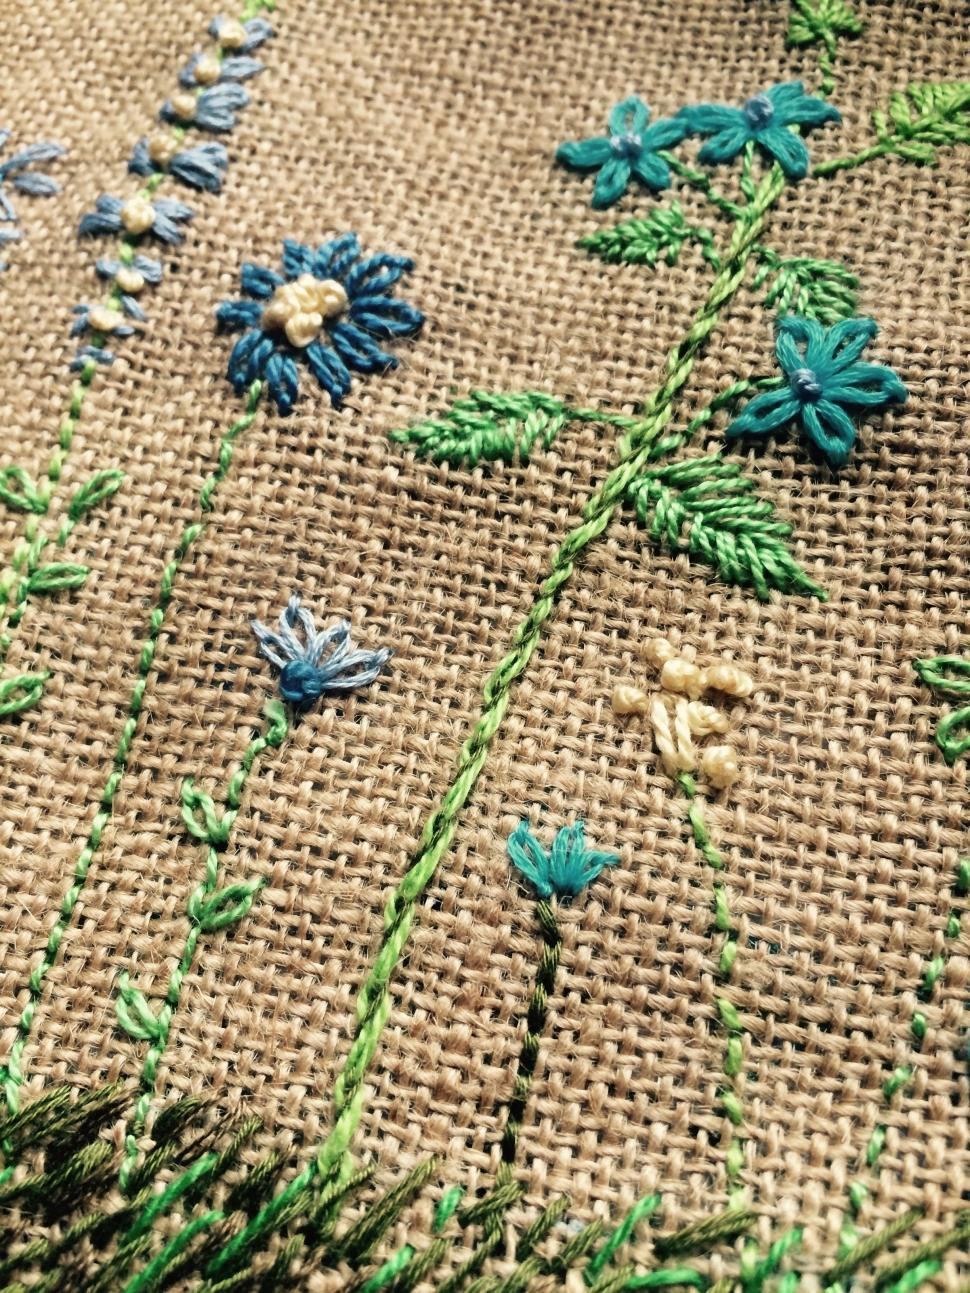 Download Free Stock Photo of Embroidery Designs